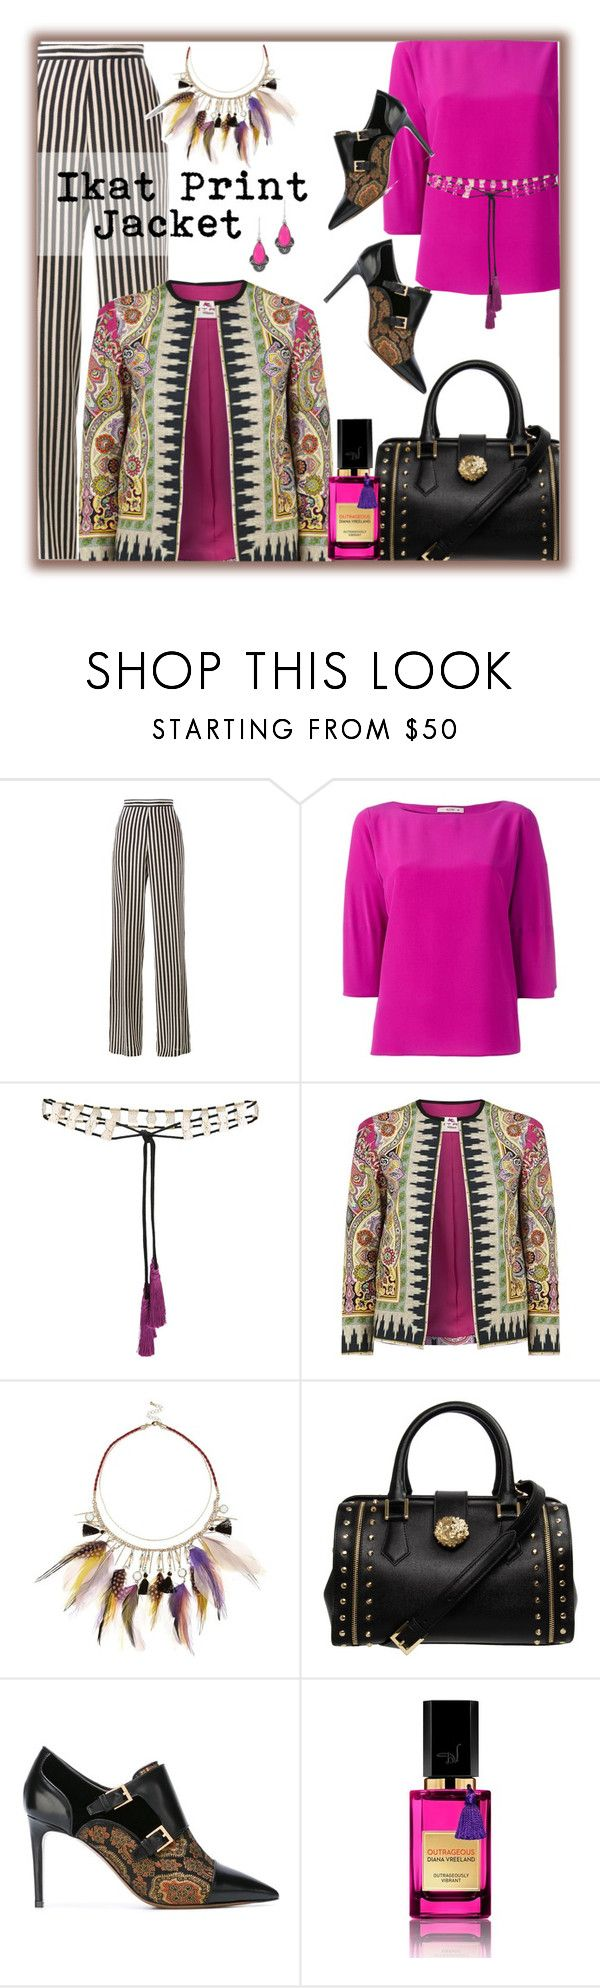 """""""Etro Ikat Print Jacket"""" by franceseattle ❤ liked on Polyvore featuring Etro, River Island, Versus, Diana Vreeland and NOVICA"""